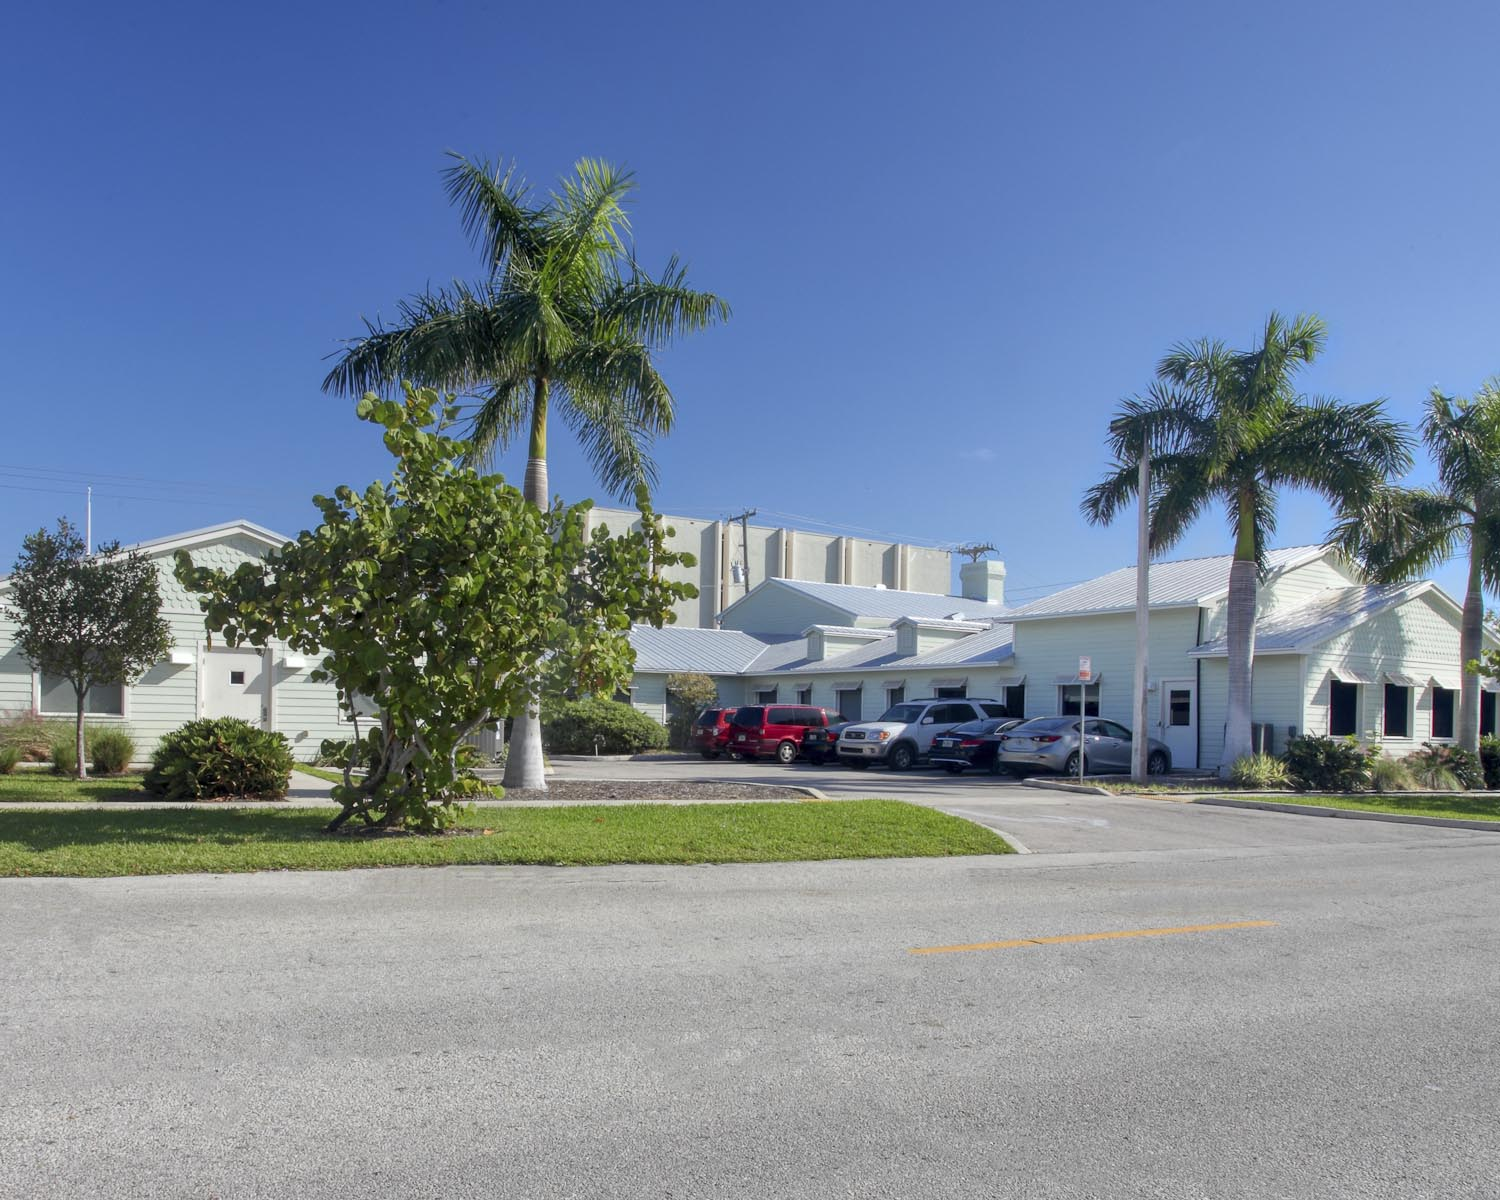 Fort Lauderdale detox center image 8 no one has to know you went into treatment